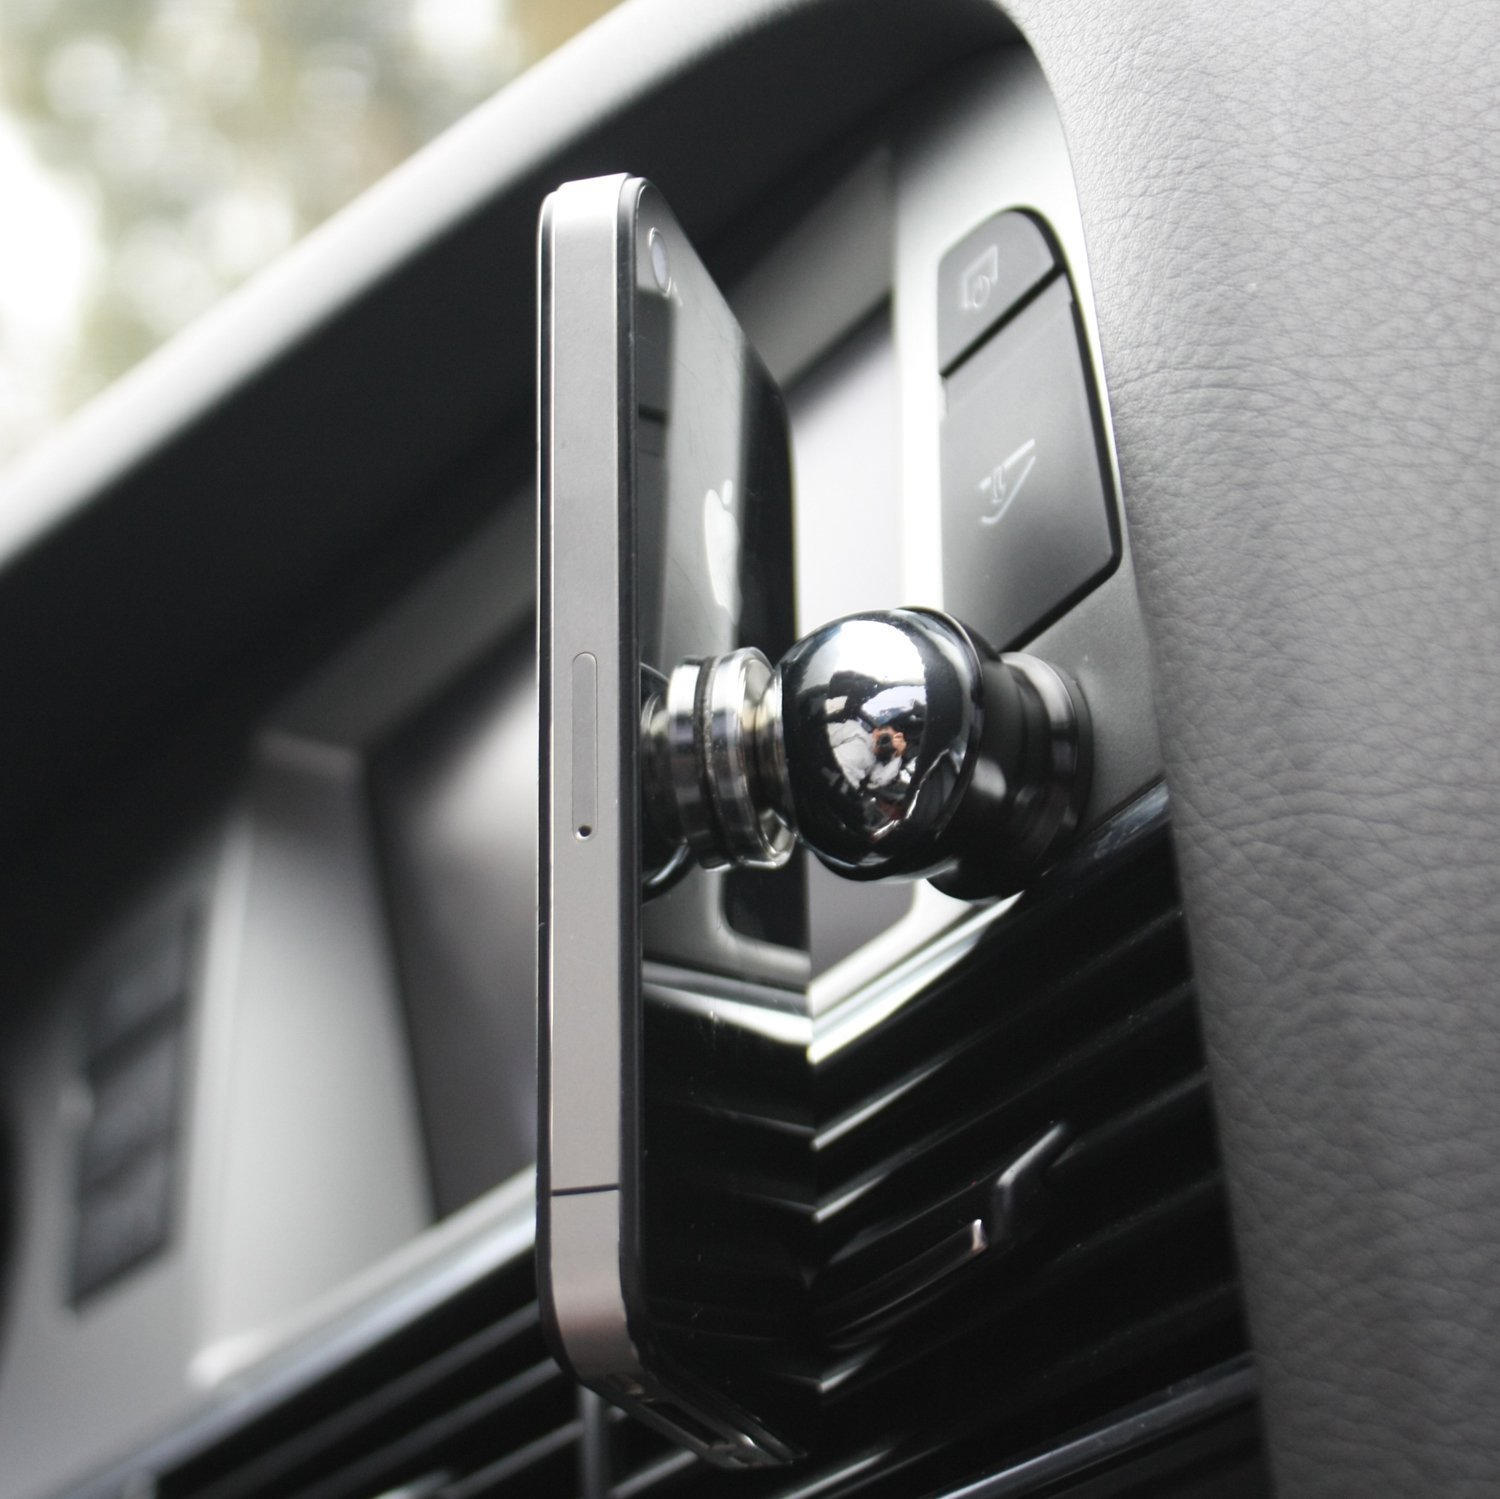 Car Dash Magnetic Mount Kit for Cell Phone DOUBLE